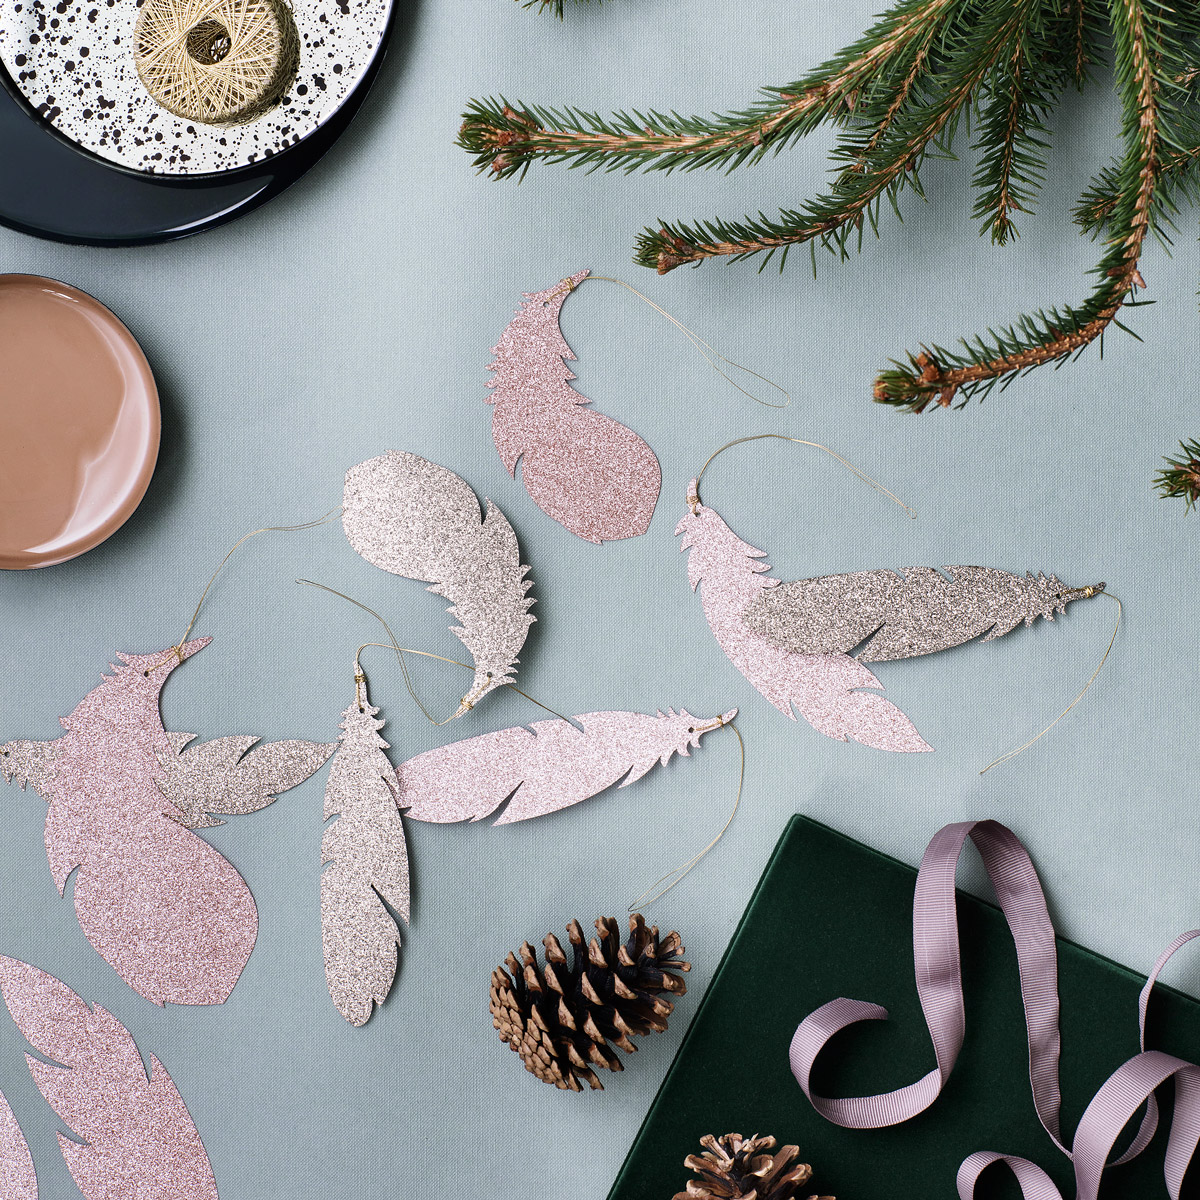 Silver-Feathers-on-Christmas-table-top